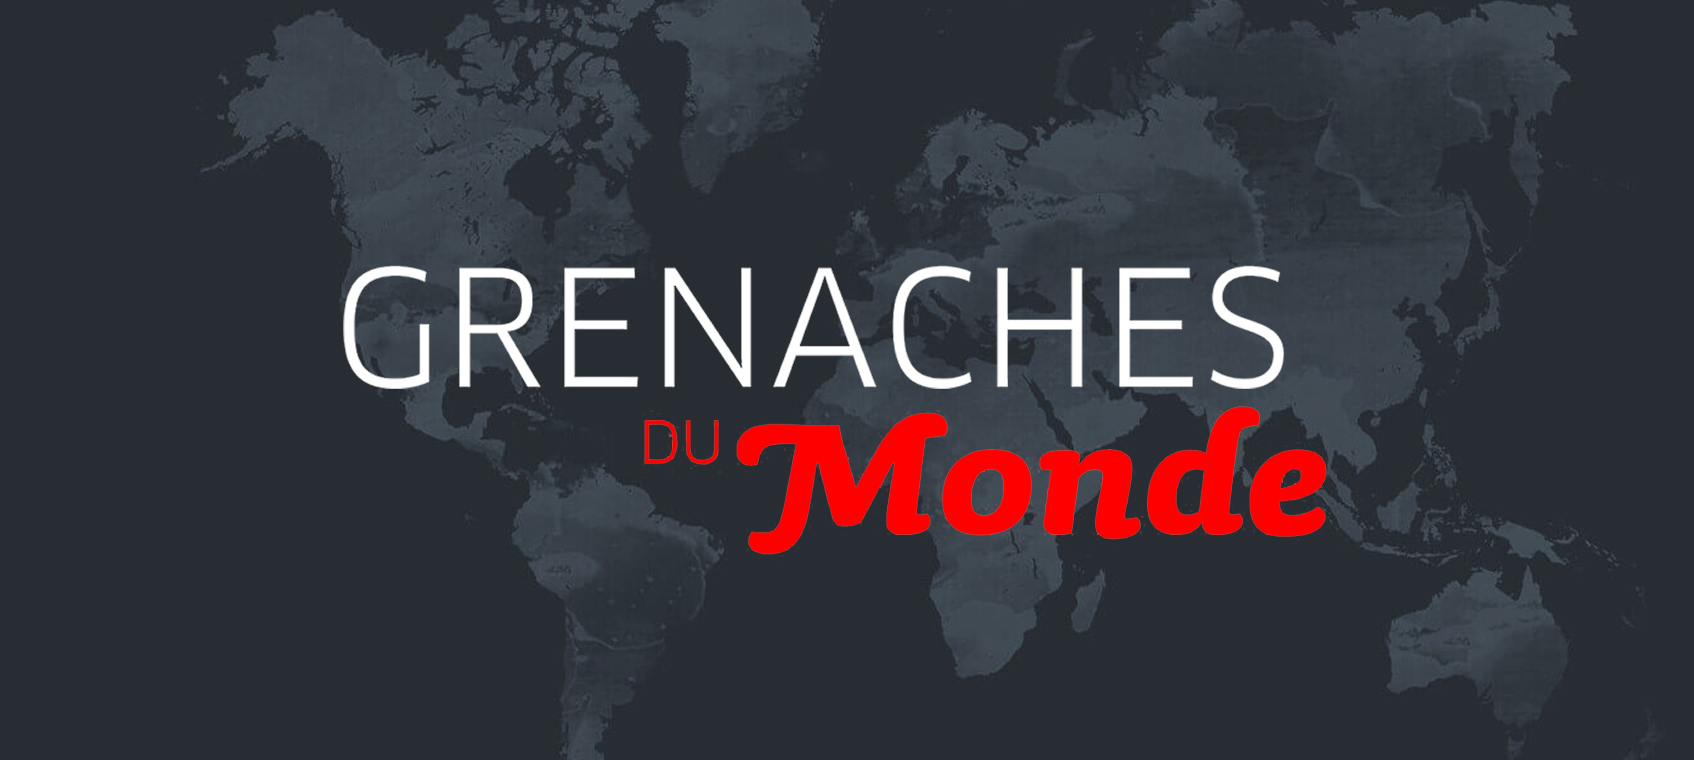 Logo Grenaches du Monde background world